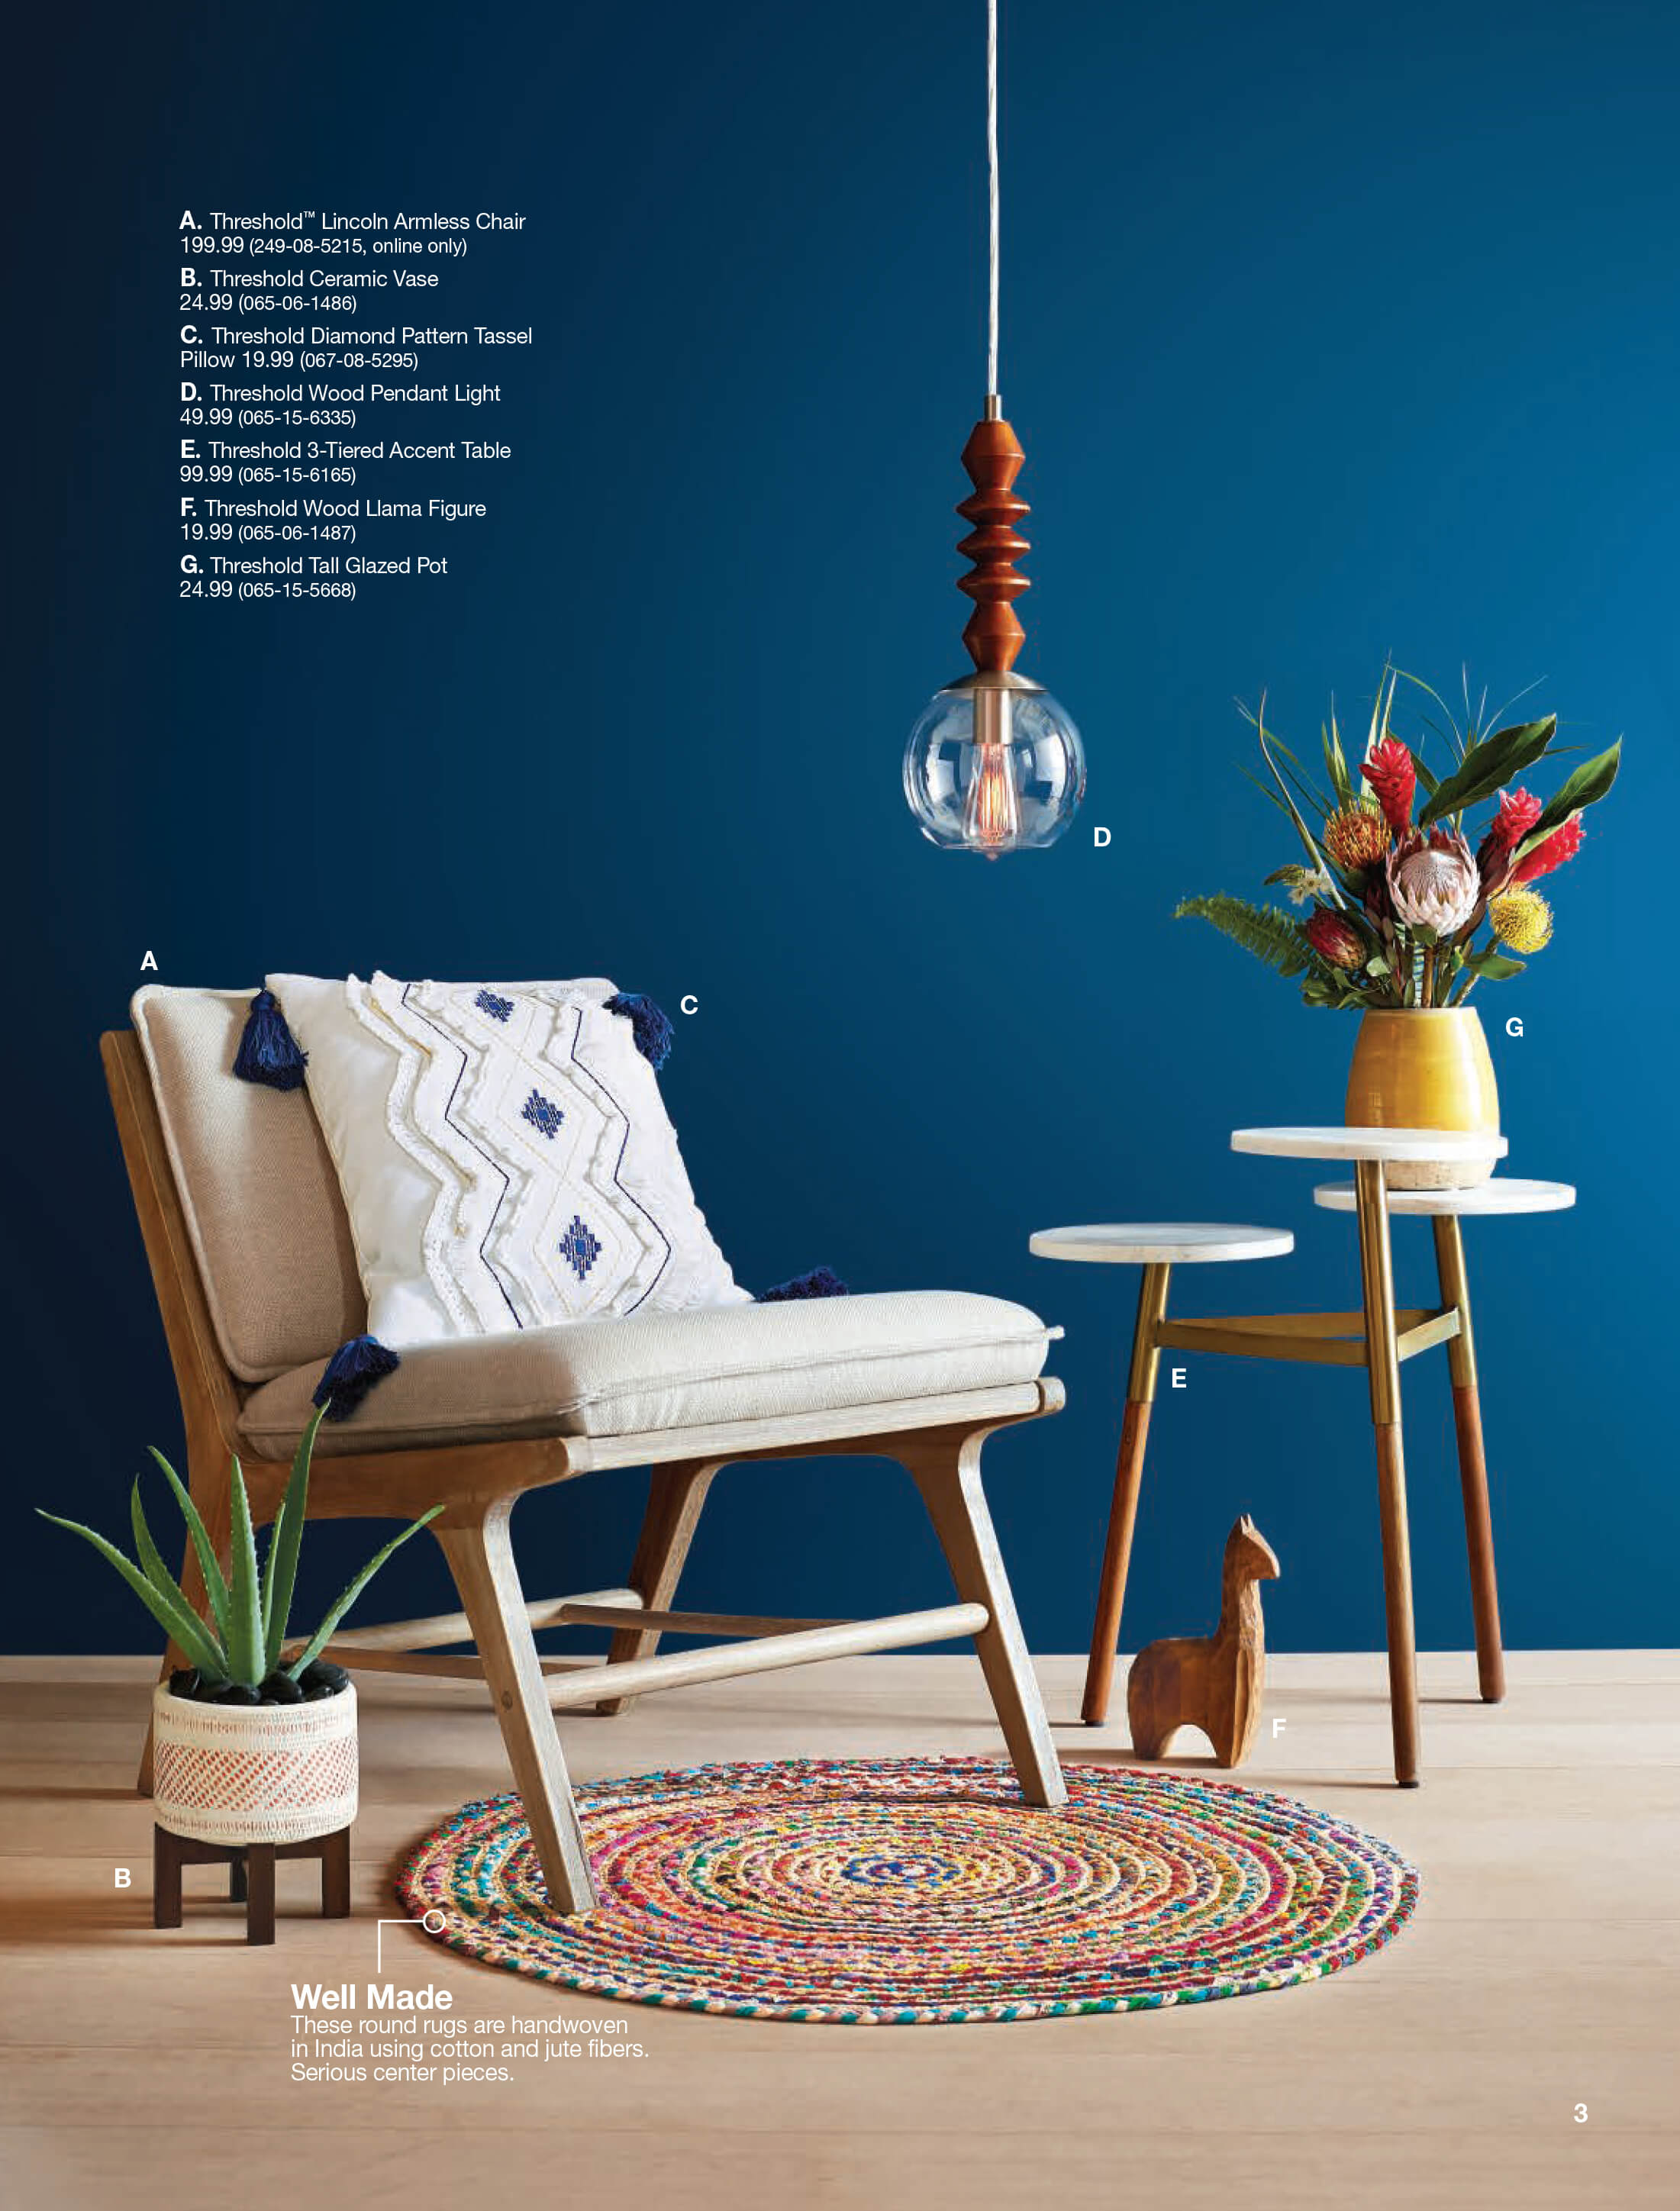 new target home product and emily henderson first look spring catalog teal accent table garden chairs set cane furniture wood chest mini side leick mission threshold console